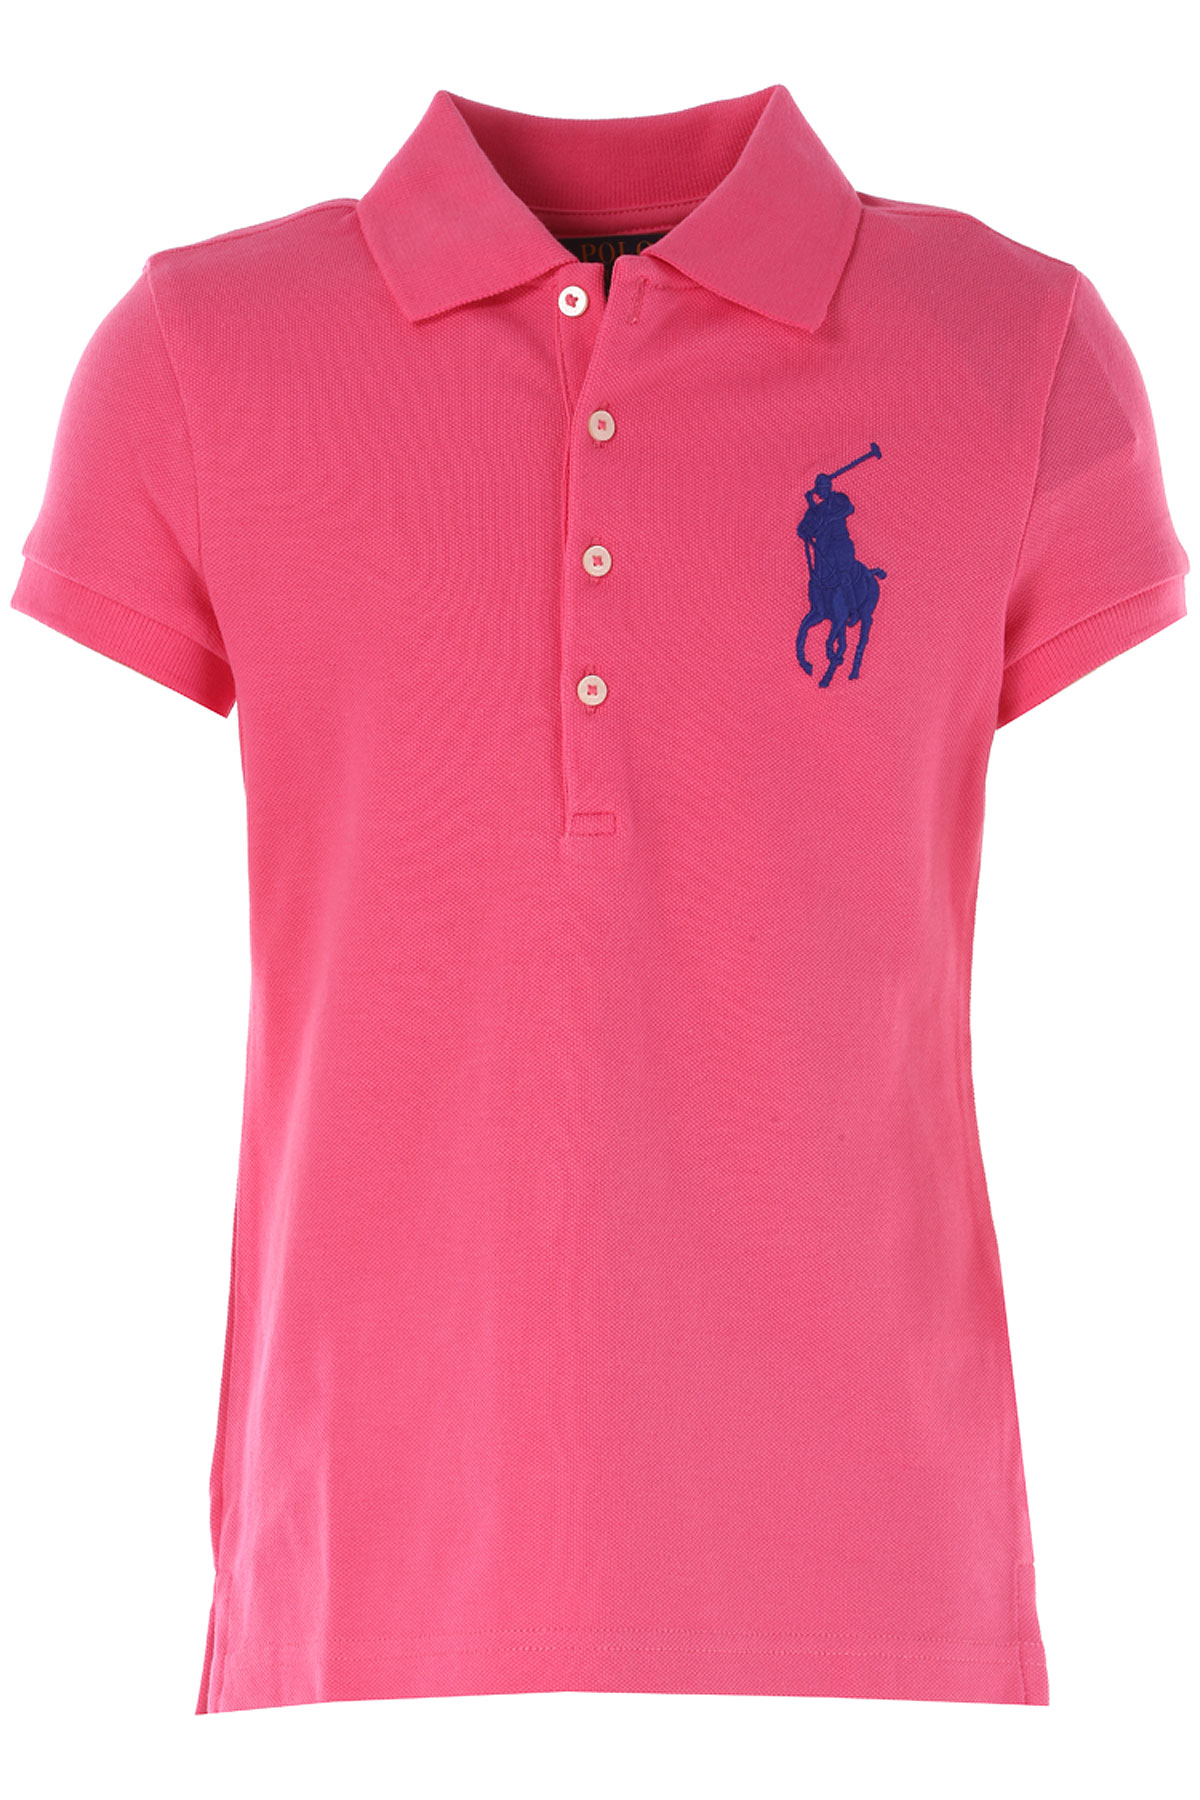 Image of Ralph Lauren Kids Polo Shirt for Girls On Sale in Outlet, Fuchsia, Cotton, 2017, 2Y 4Y 6Y